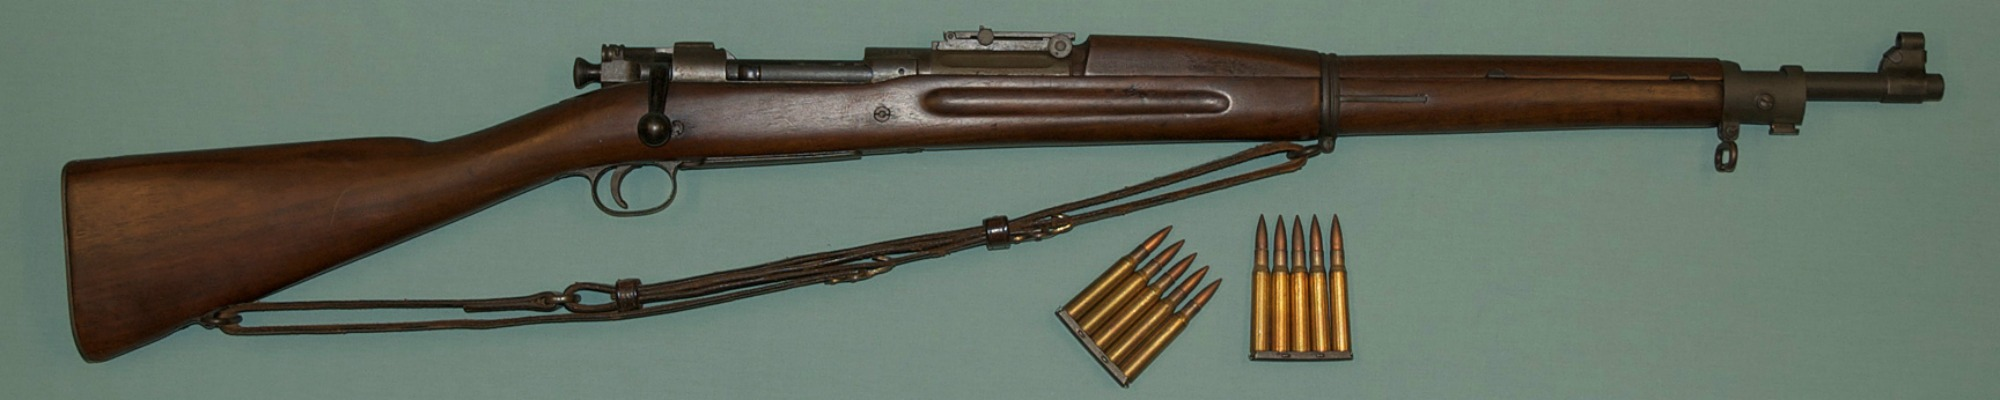 springfield rifle for article.jpg